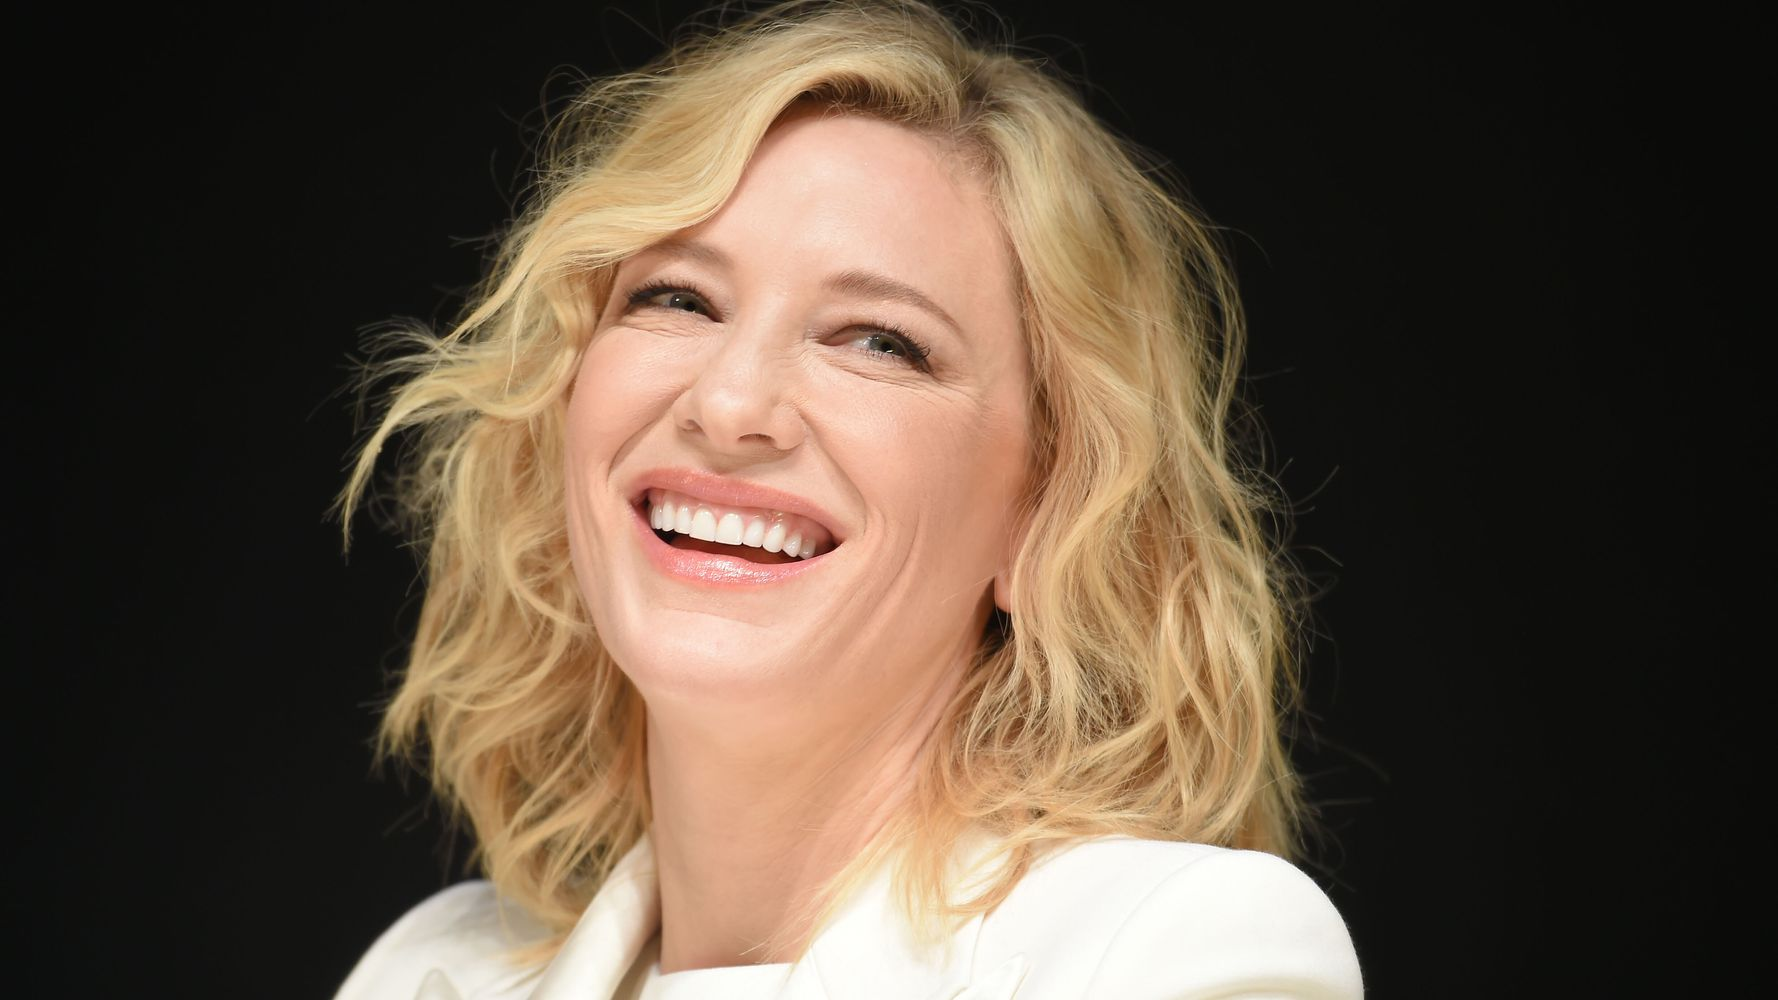 Thoughtful Quotes About Motherhood From Cate Blanchett